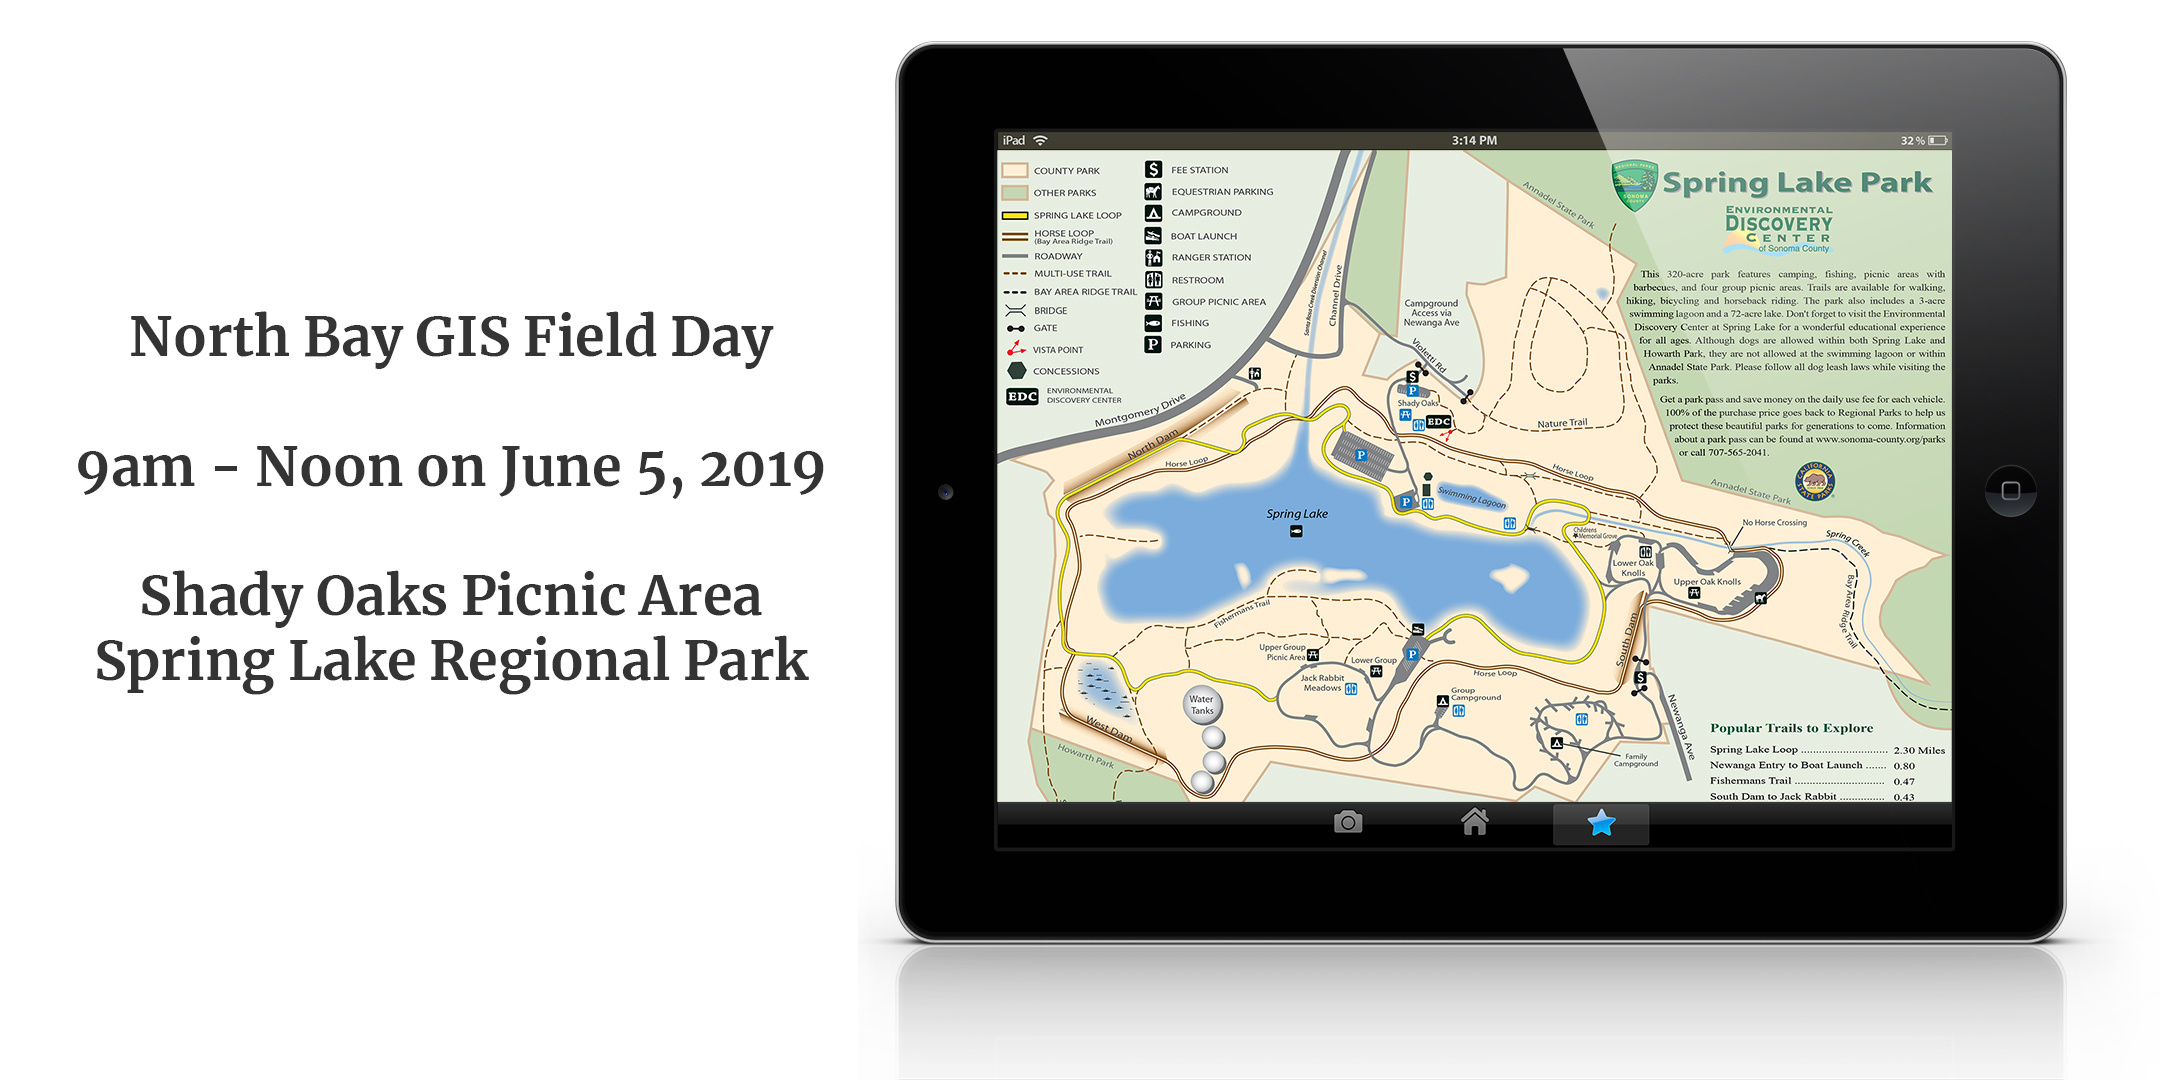 North Bay GIS Field Day - June 5th at Spring Lake Regional Park from 9am to noon.